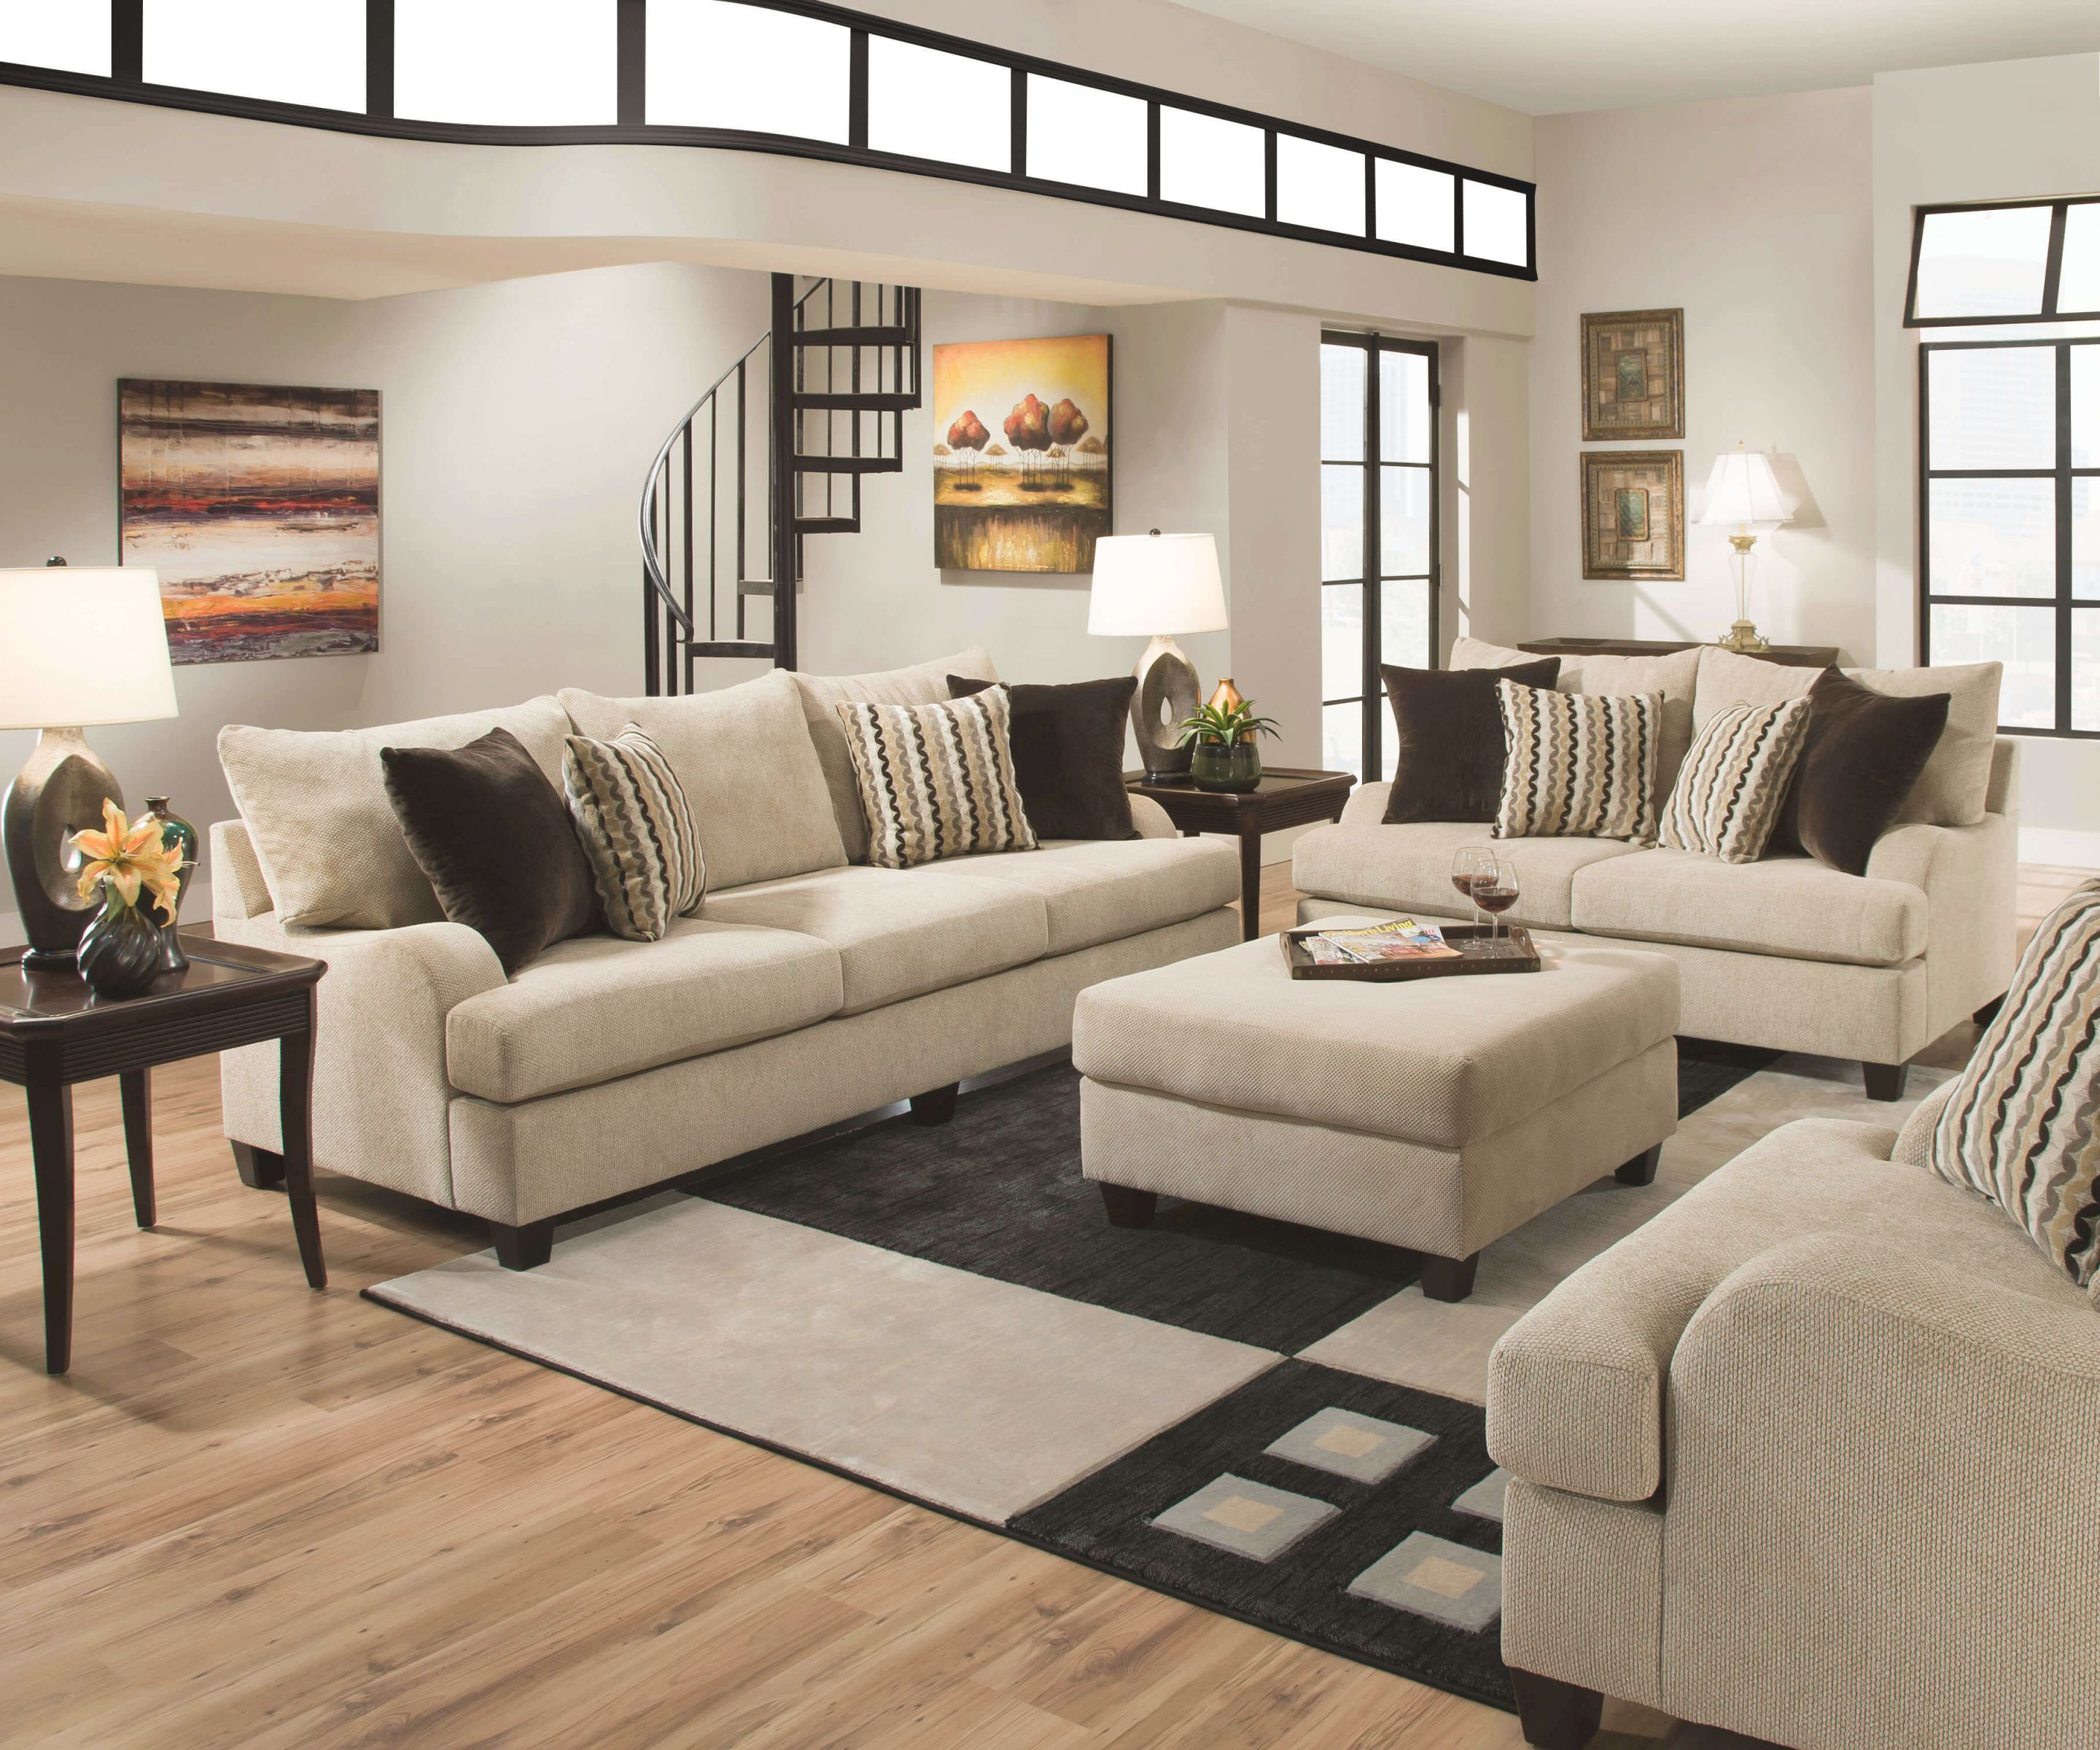 Fresh Living Room Furniture Layout - Awesome Decors